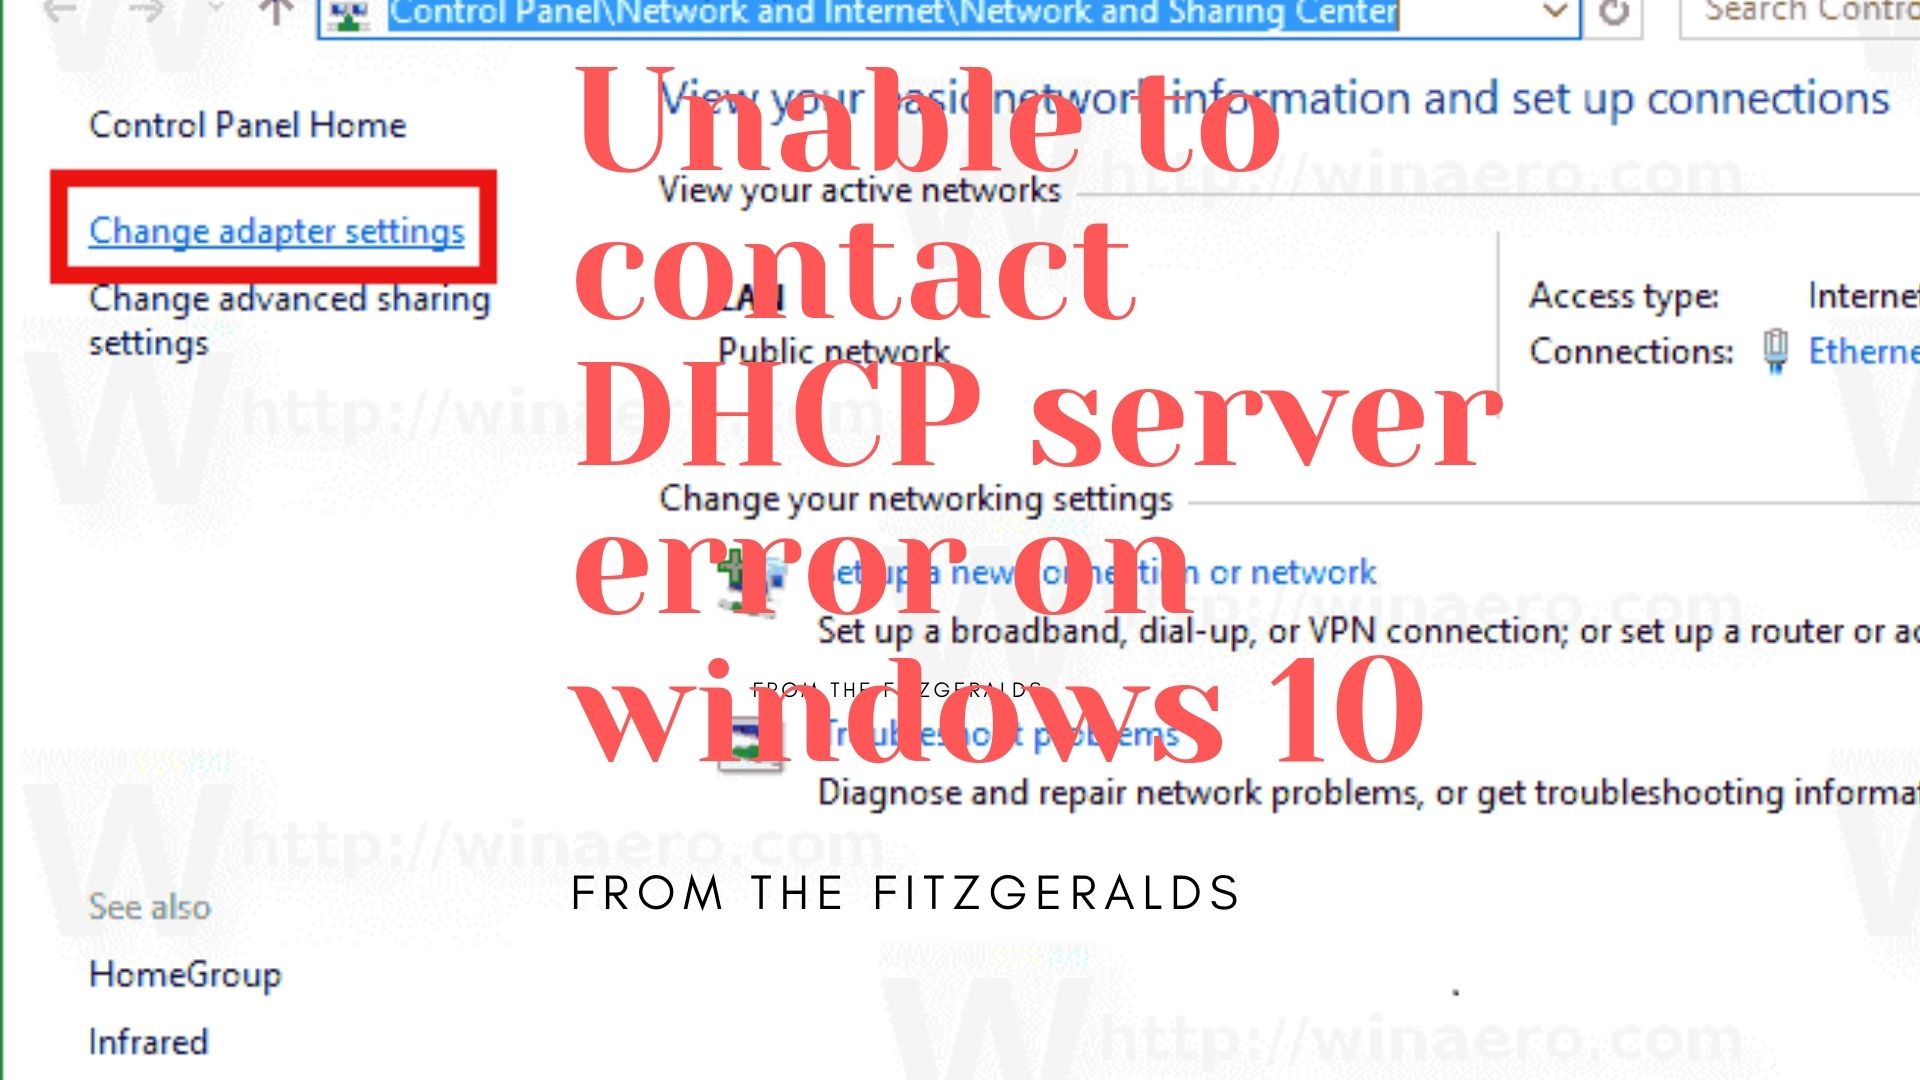 Unable to contact DHCP server error on windows 10